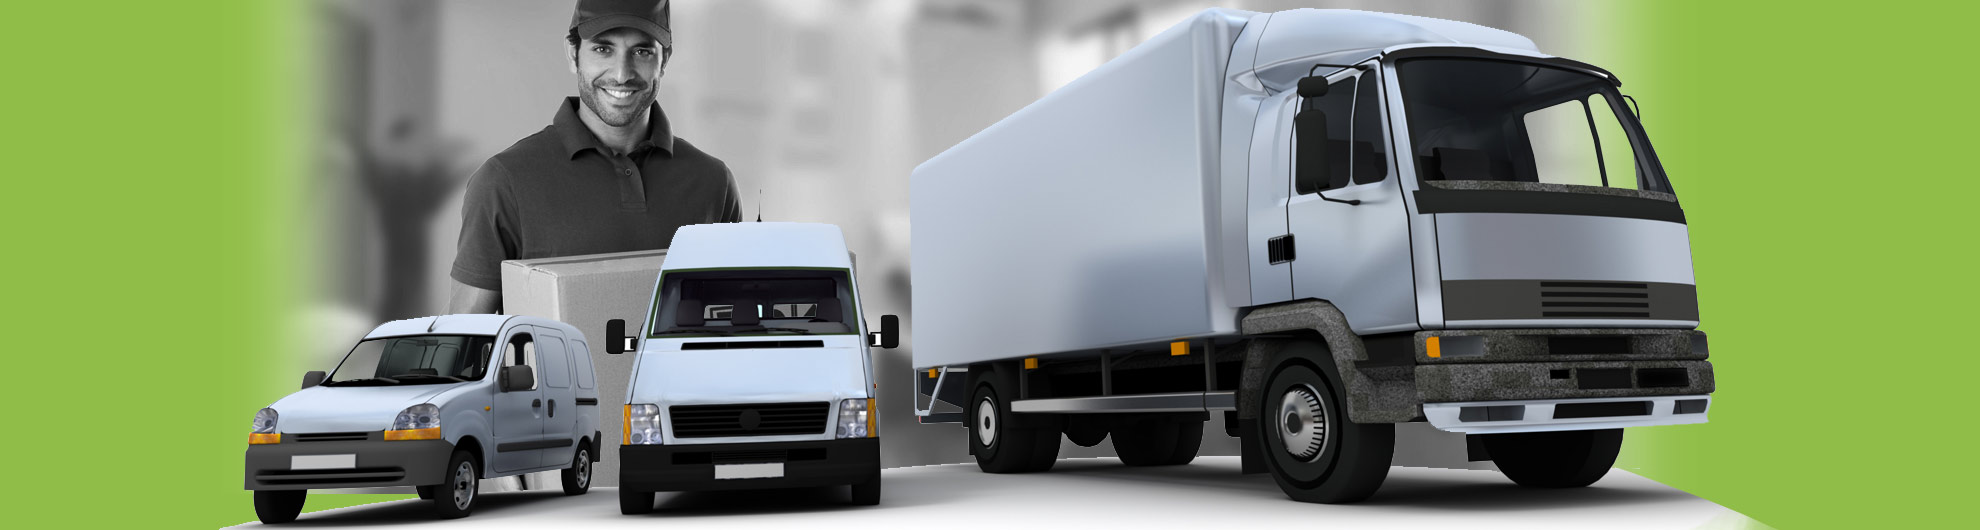 Rivne  International Movers - Shipping Companies